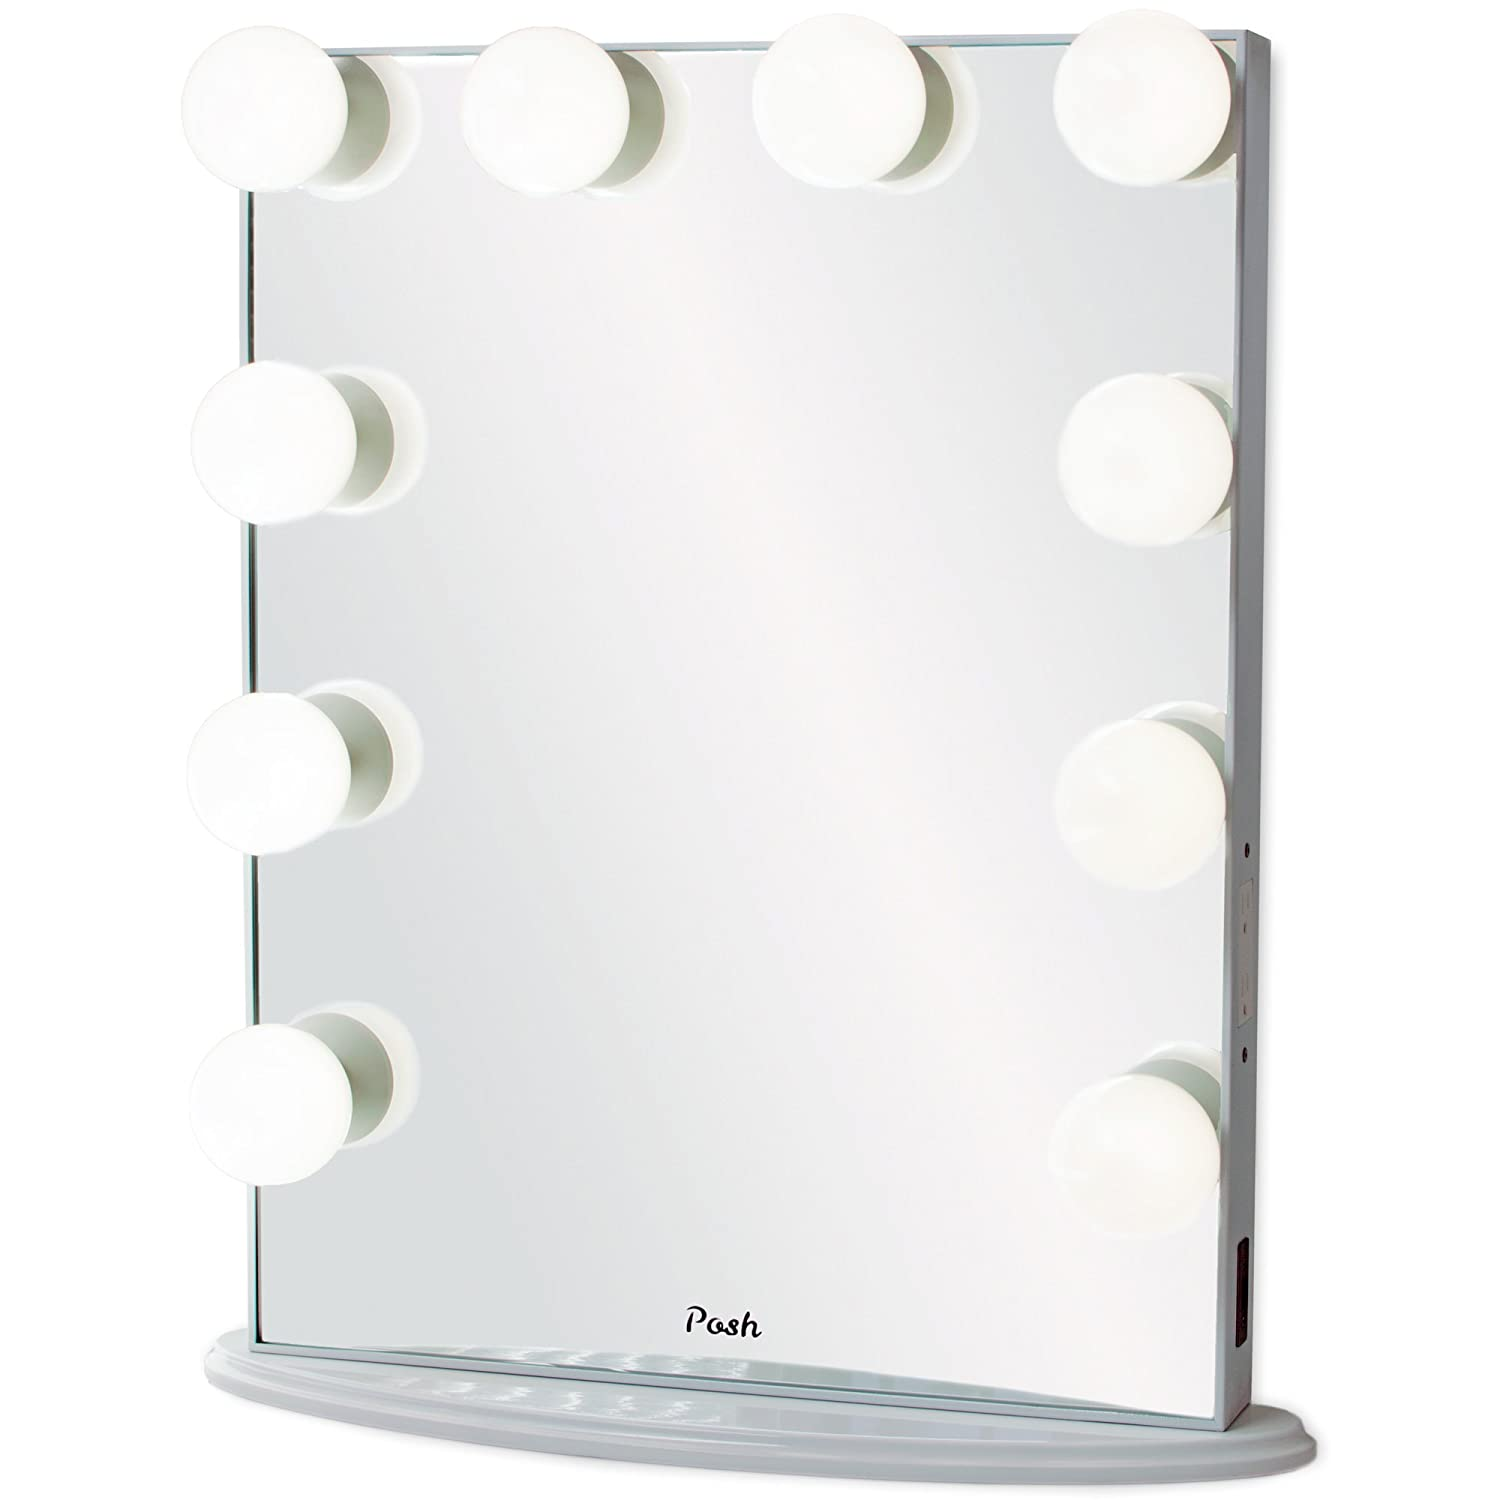 Posh Hollywood Vanity Mirror, Ultra Slim Frame Beauty Makeup Lighted Mirror With 10 Daylight Globe Dimmable LED Light Bulbs, Piano White Posh Organizers